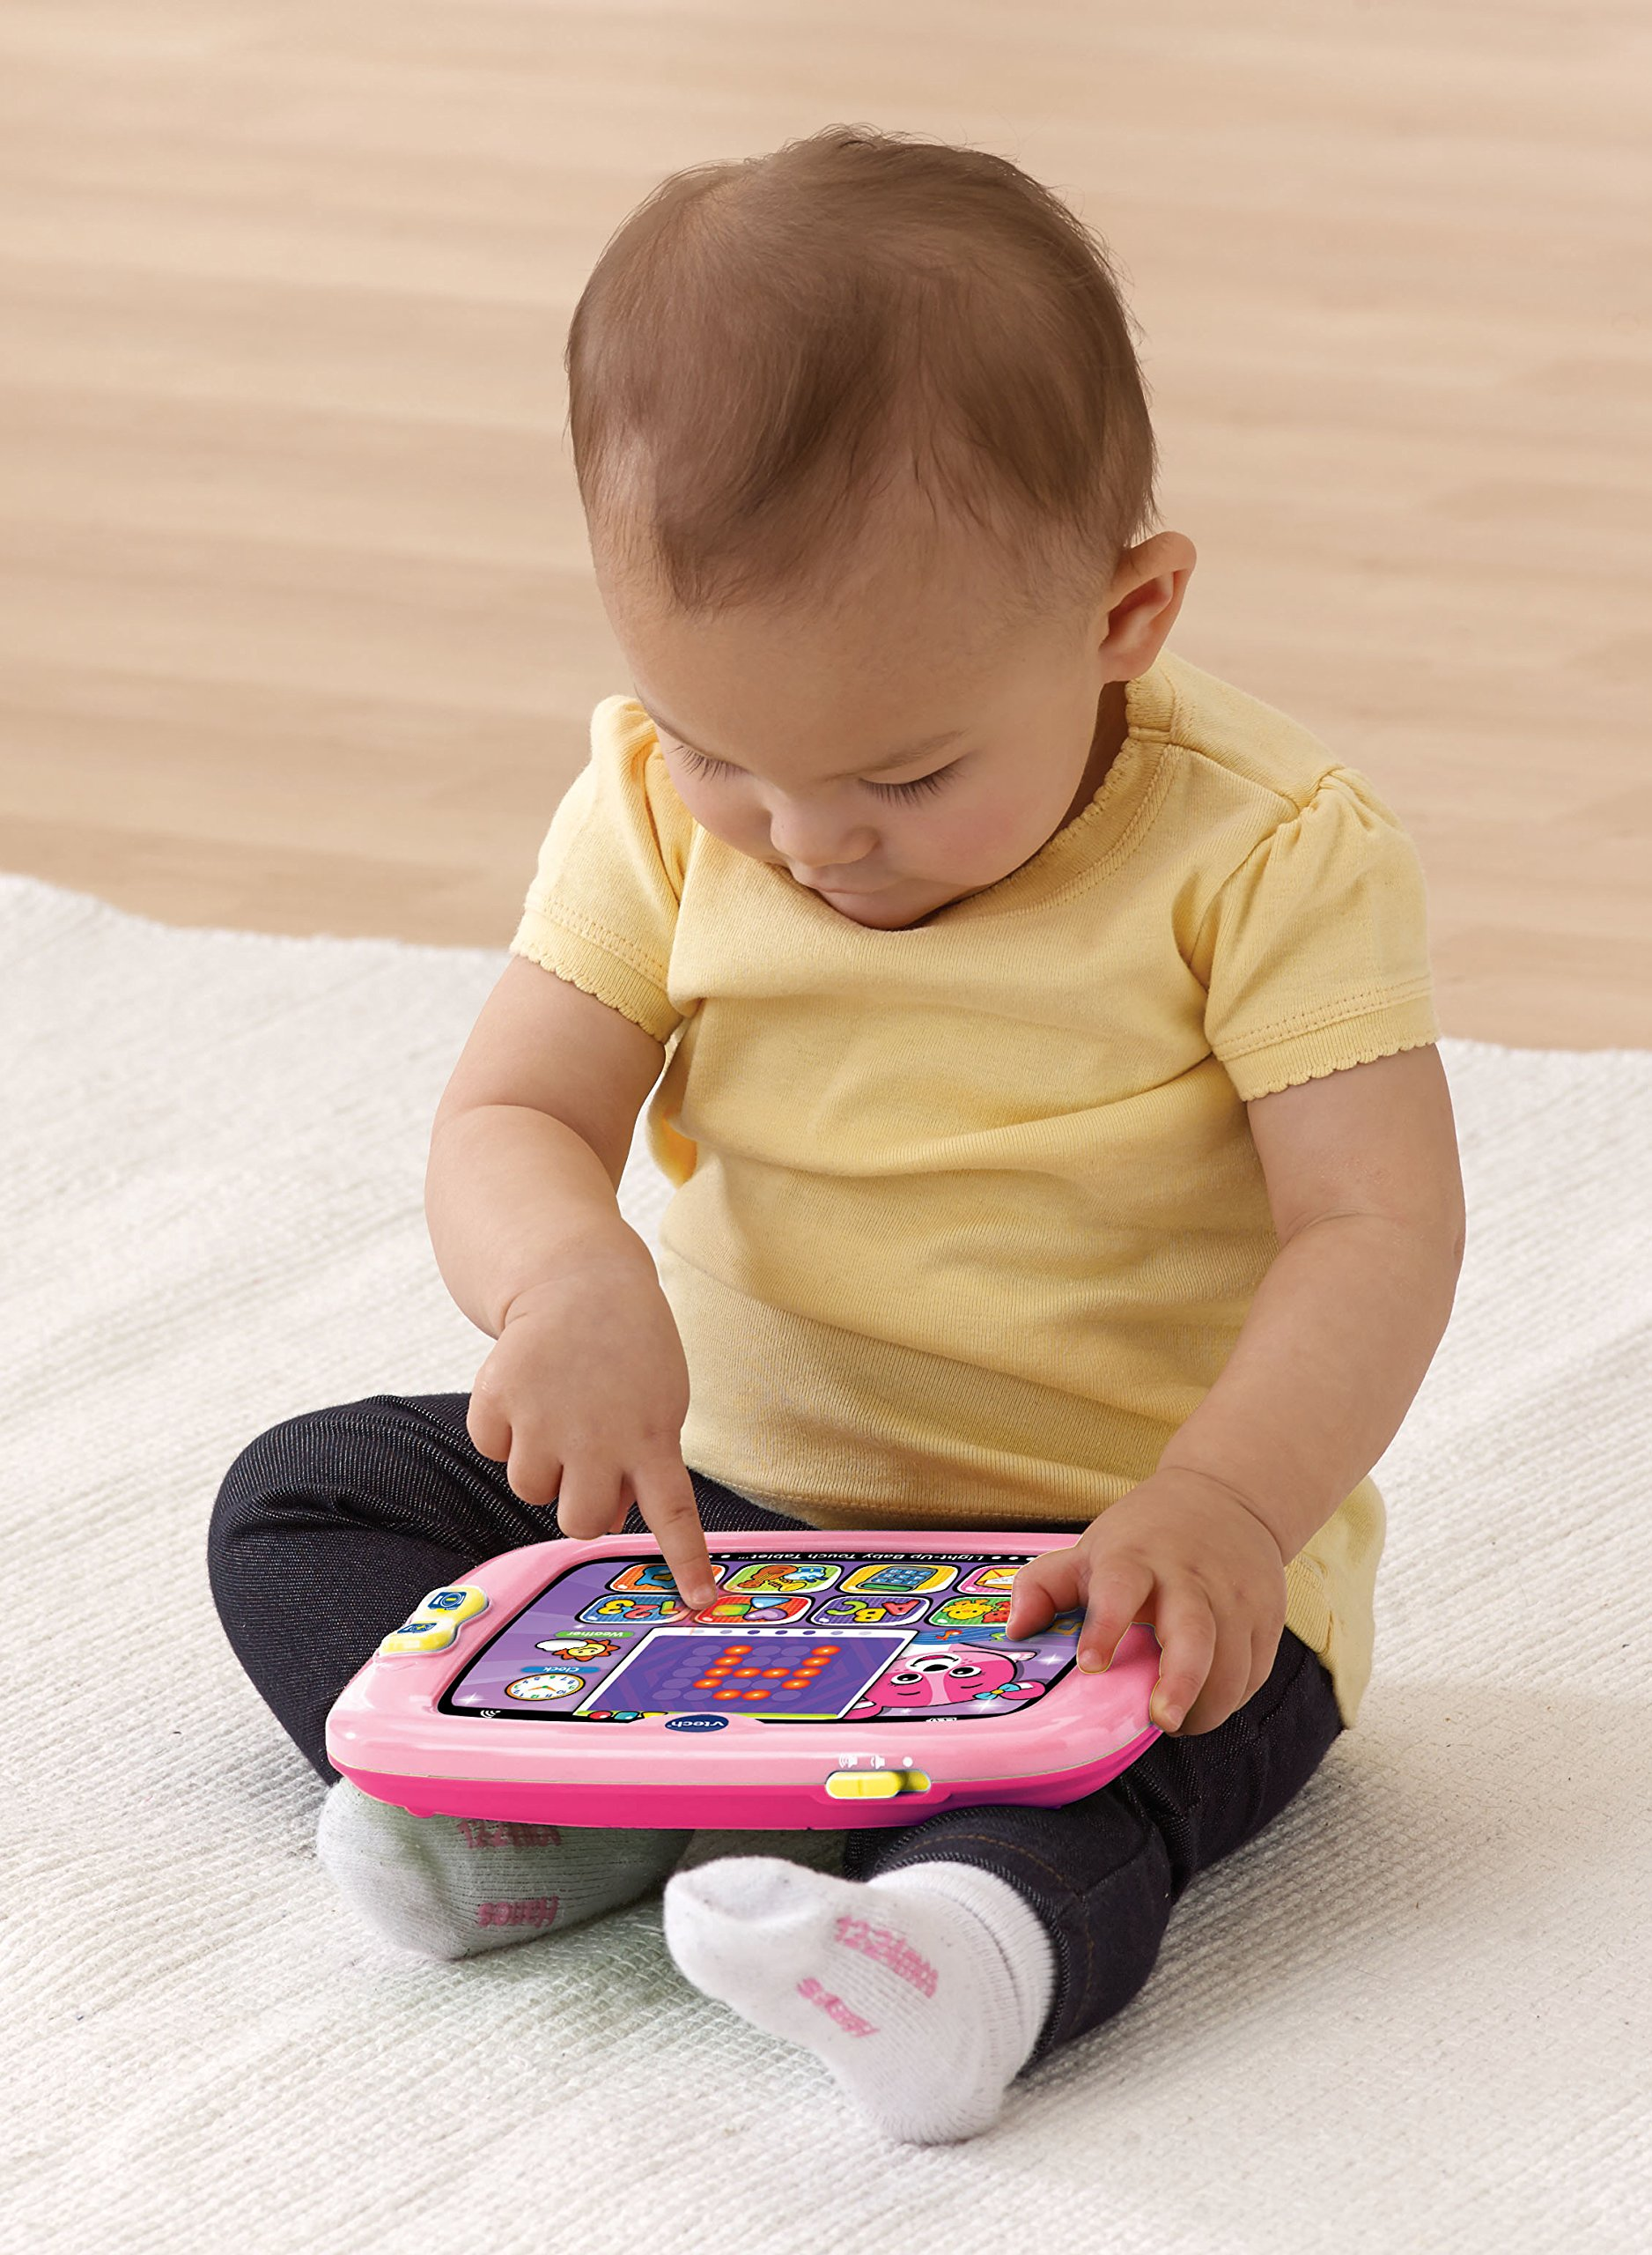 VTech Light-Up Baby Touch Tablet, Pink by VTech (Image #2)